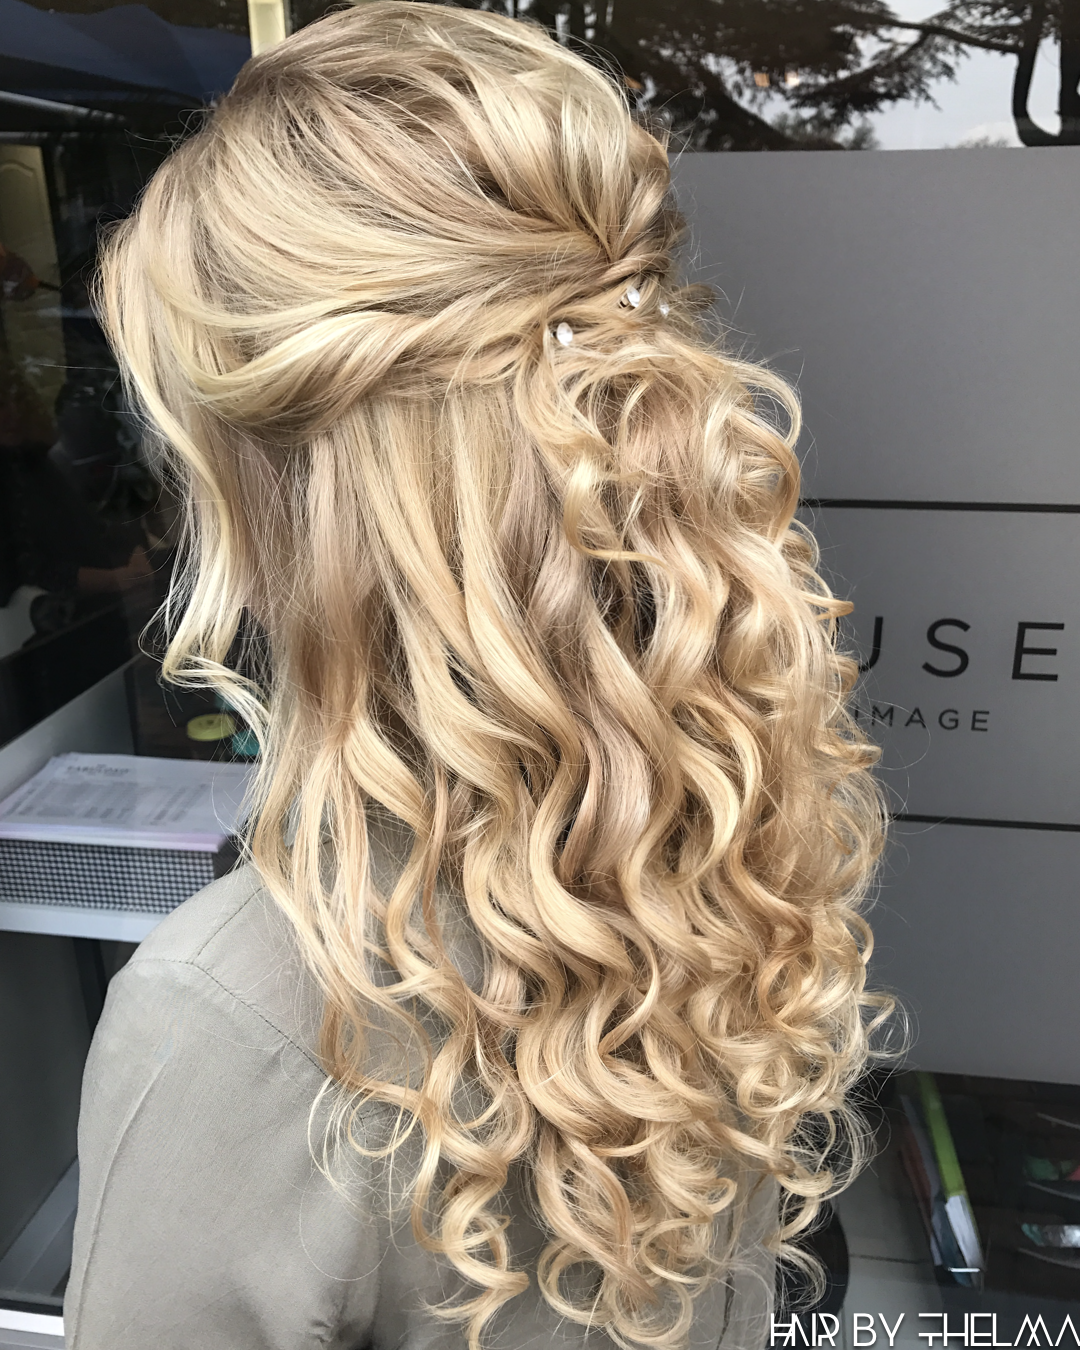 half up half down, prom hairstyles, matric dance, diamanté